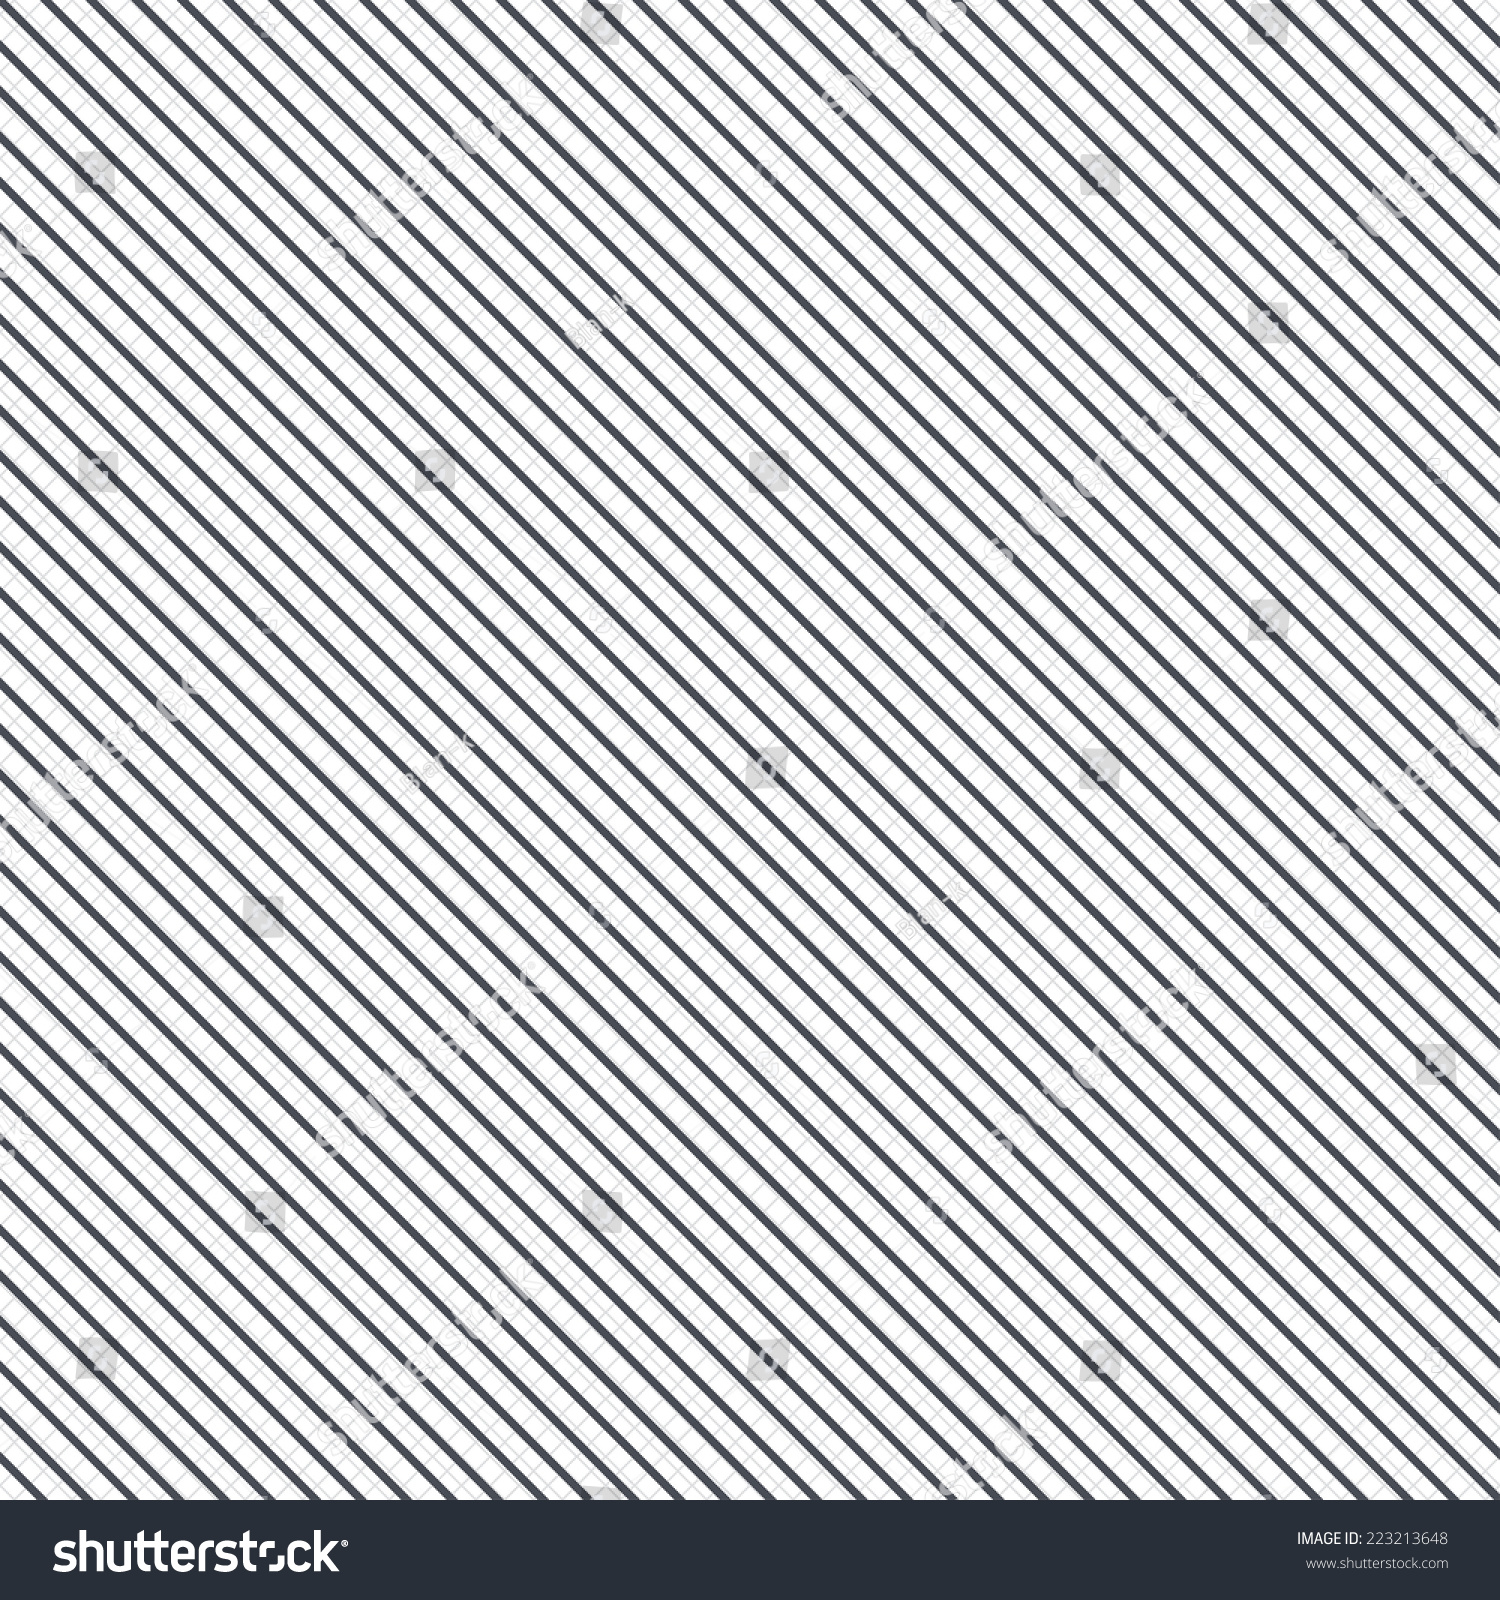 Line And Texture : Diagonal lines pattern background abstract wallpaper stock